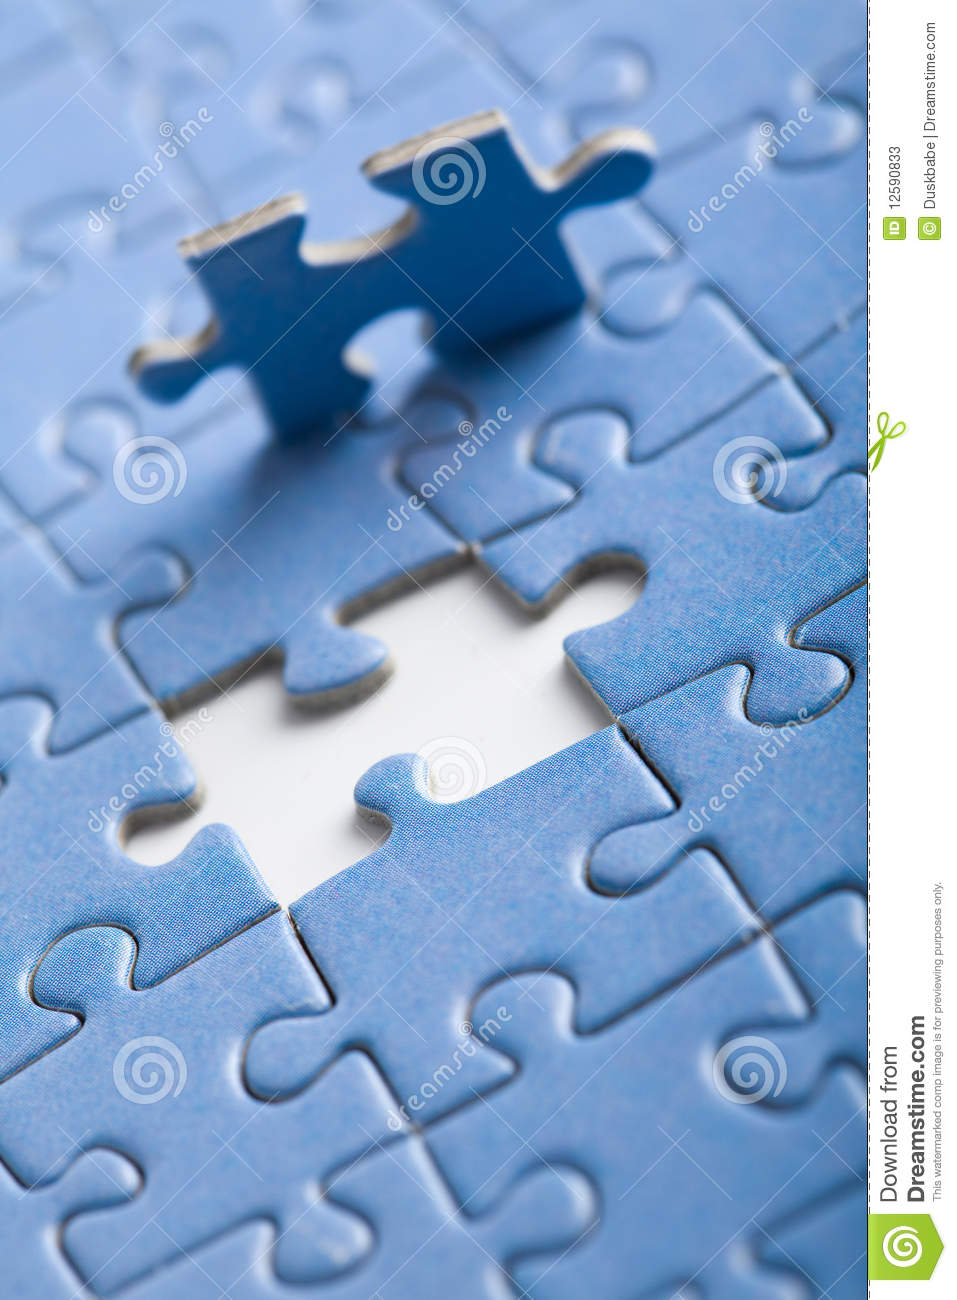 Puzzle Background With One Piece Missing Stock Photos ...